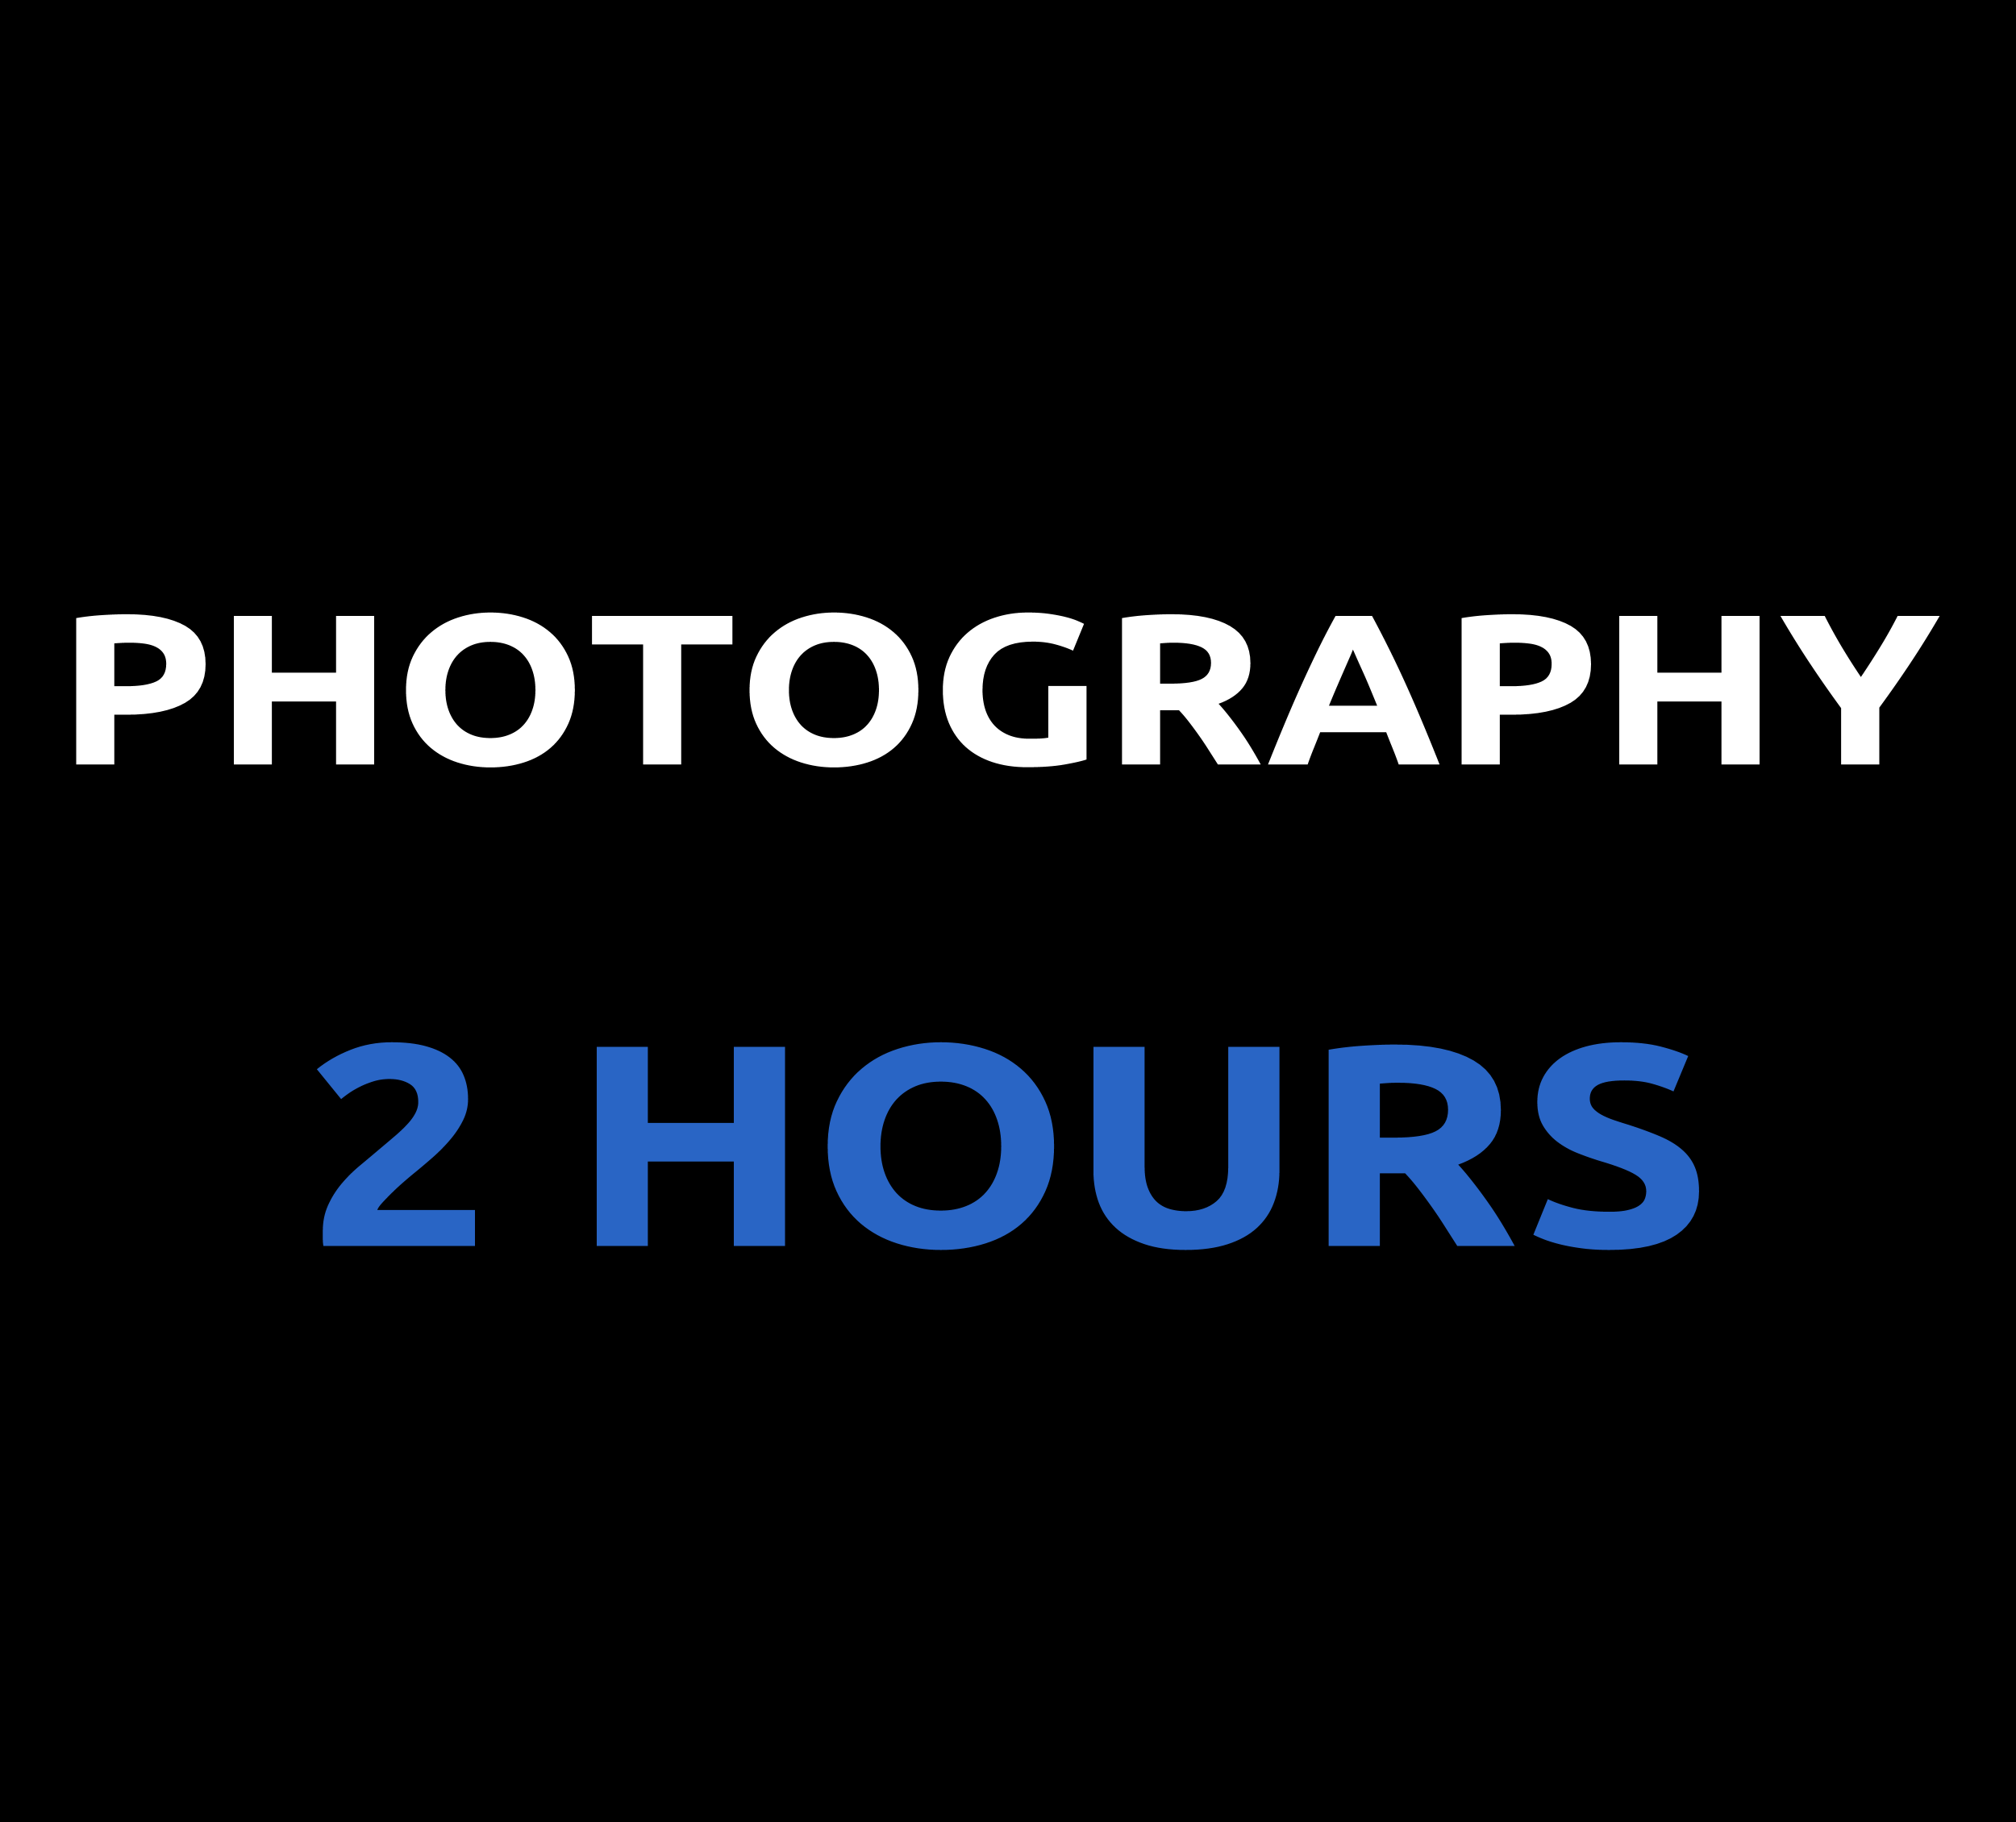 PHOTOGRAPHY - 2 HOURS 09